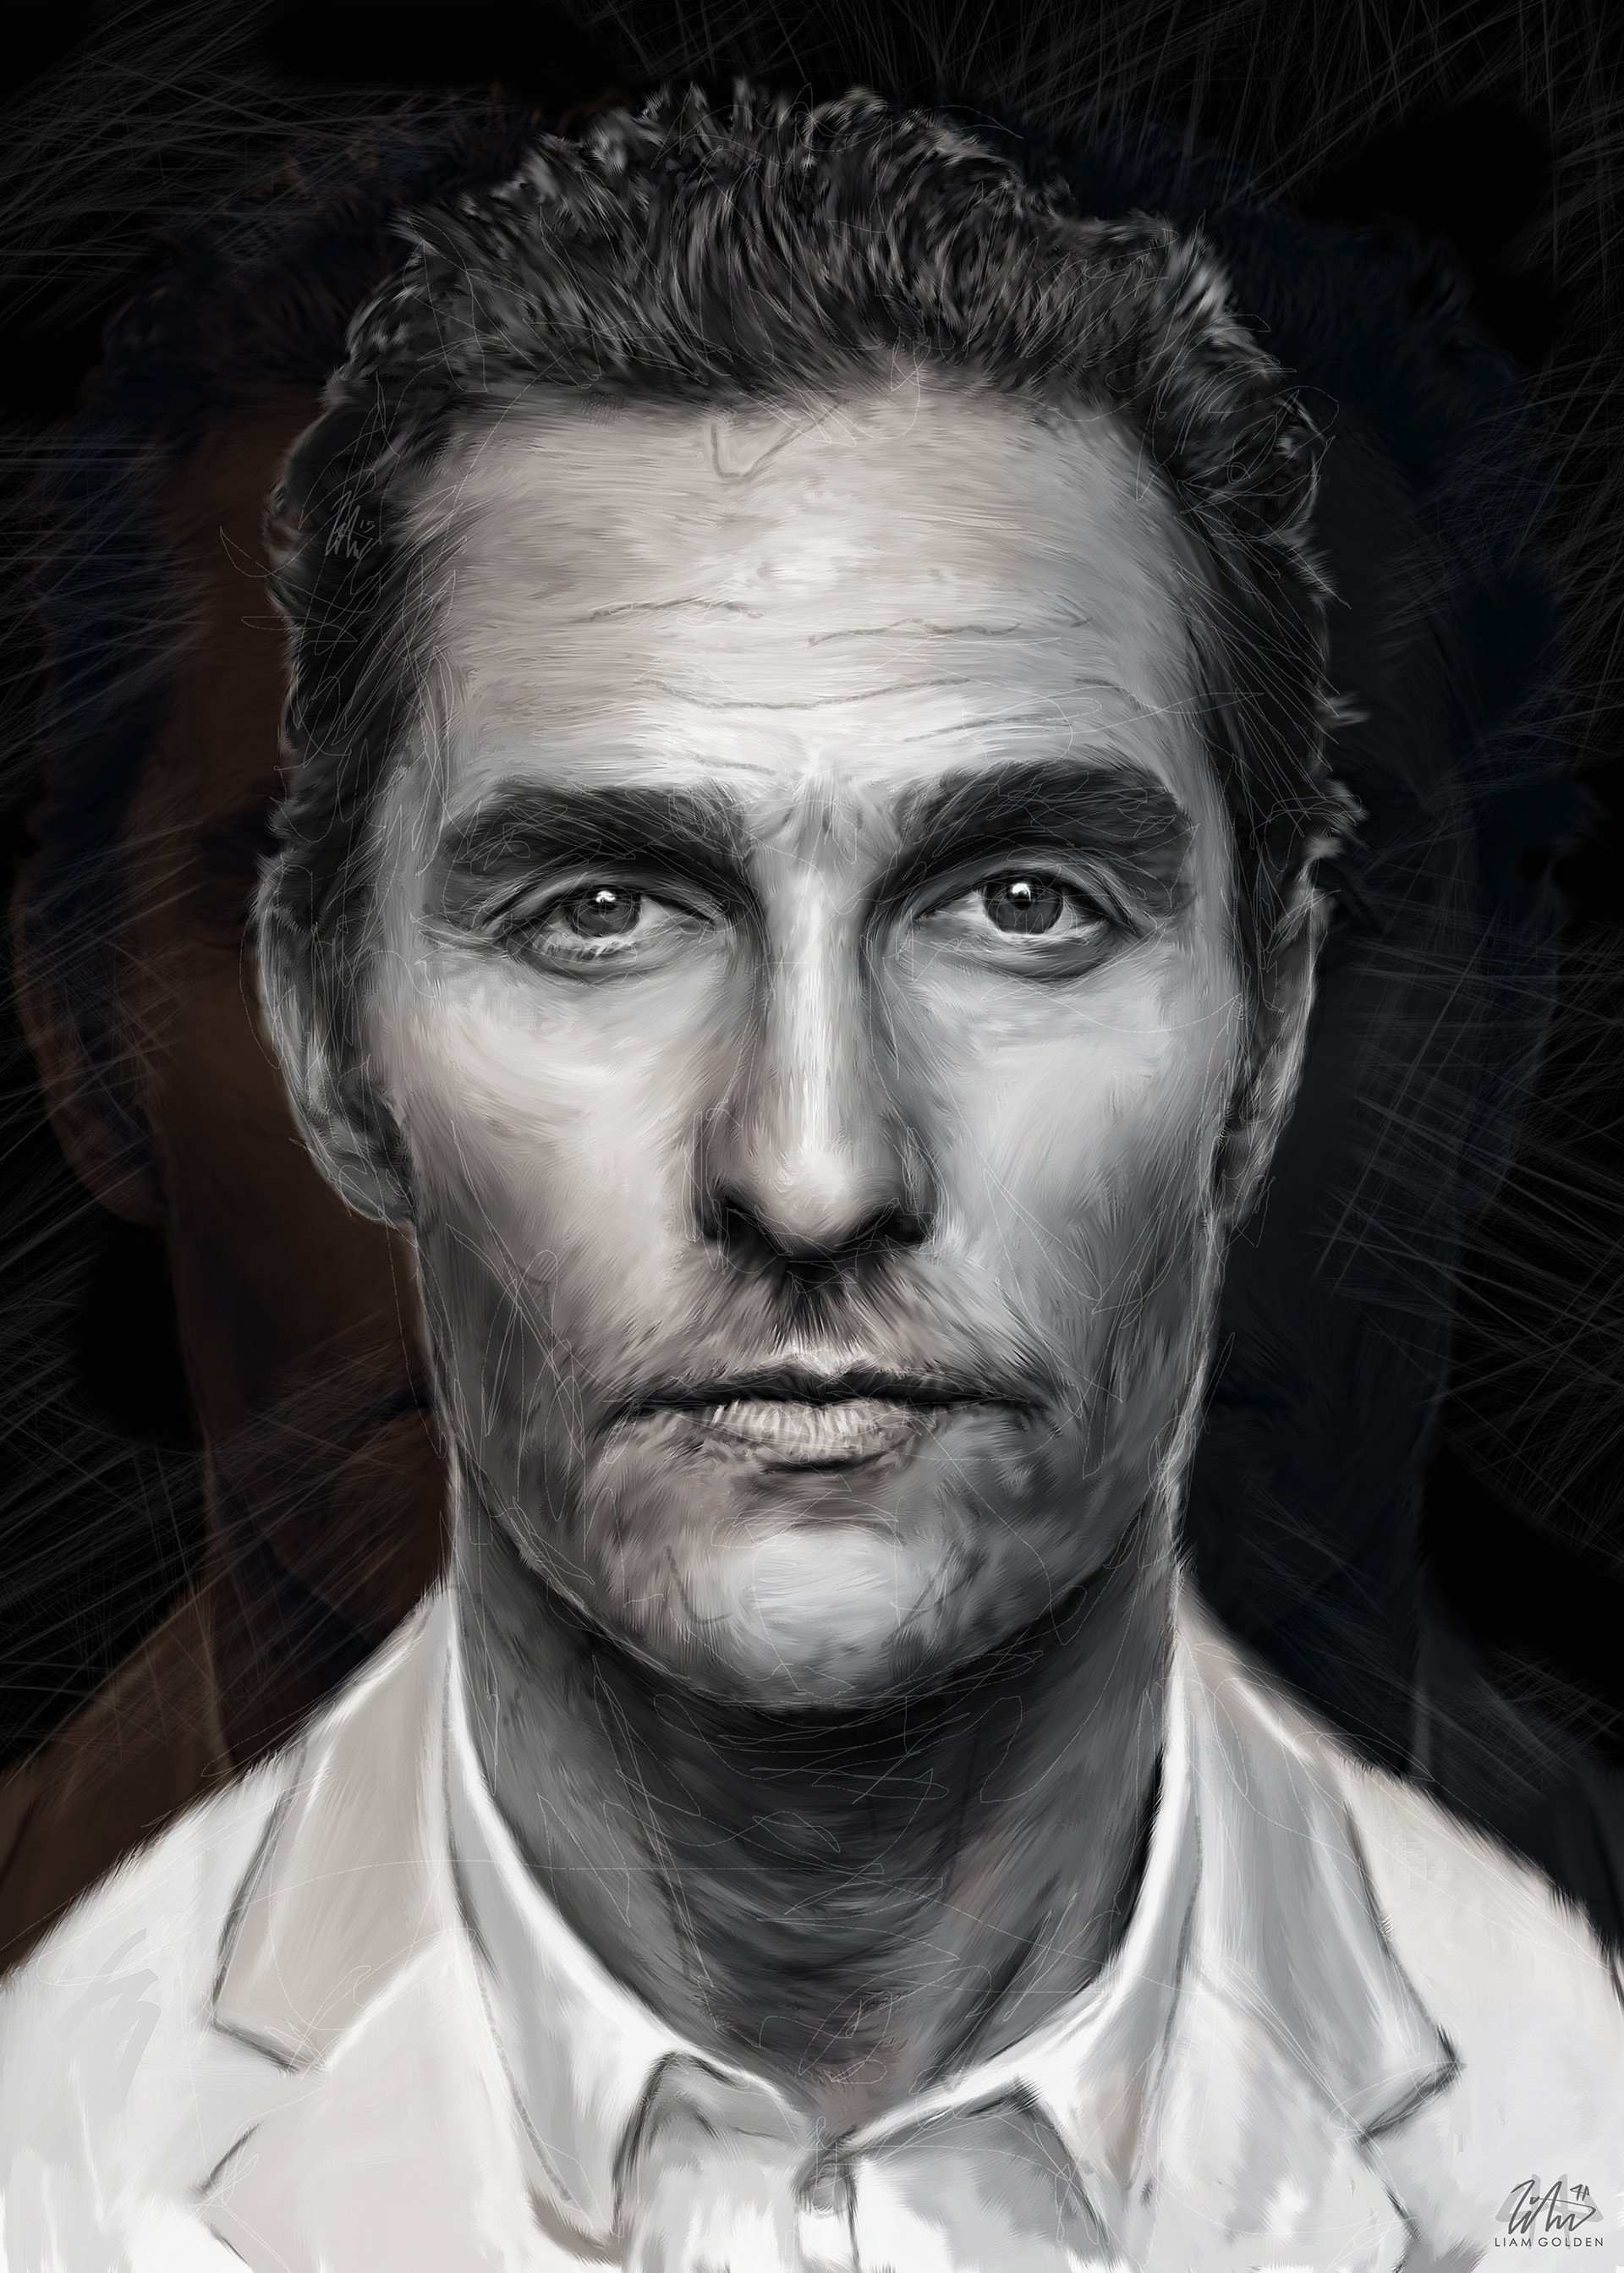 Liam golden matthew mcconaughey 04 edit to fina smaller